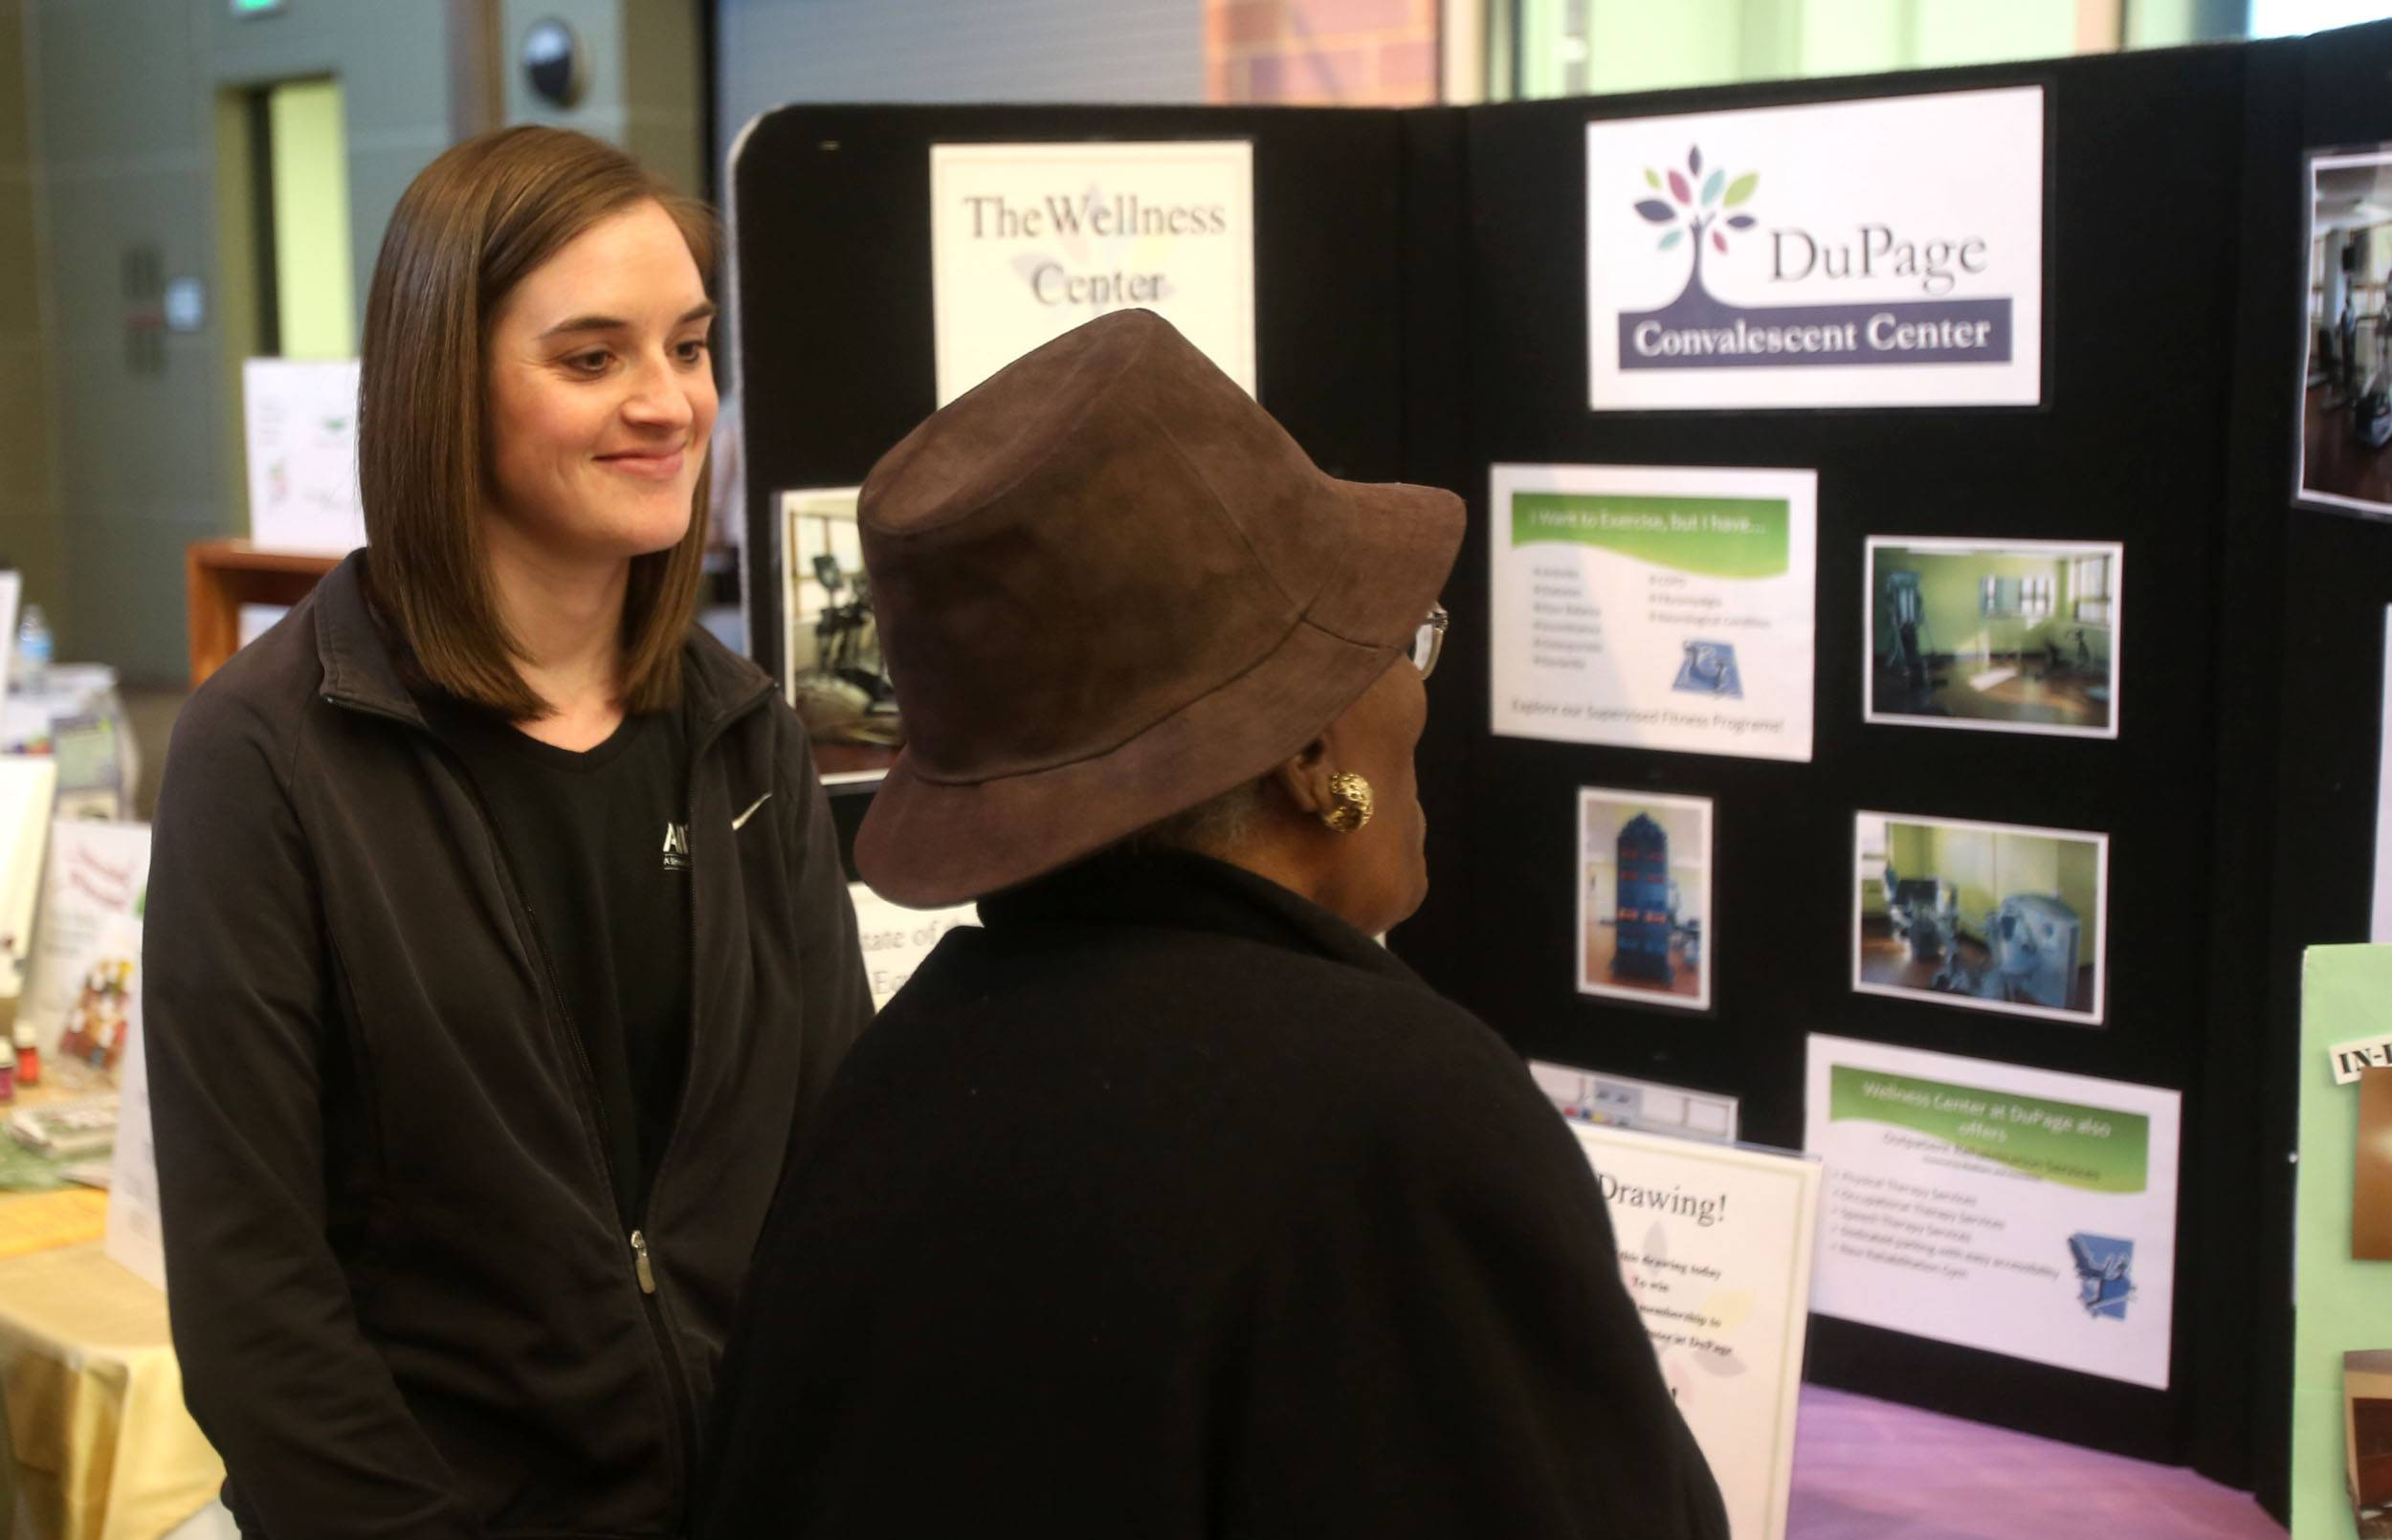 Exercise physiologist Lauren Cleary talks about the DuPage Convalescent Center on Sunday during the second annual Age Well DuPage at the College of DuPage. The event provided information to help residents stay physically, mentally and fiscally healthy as they age.